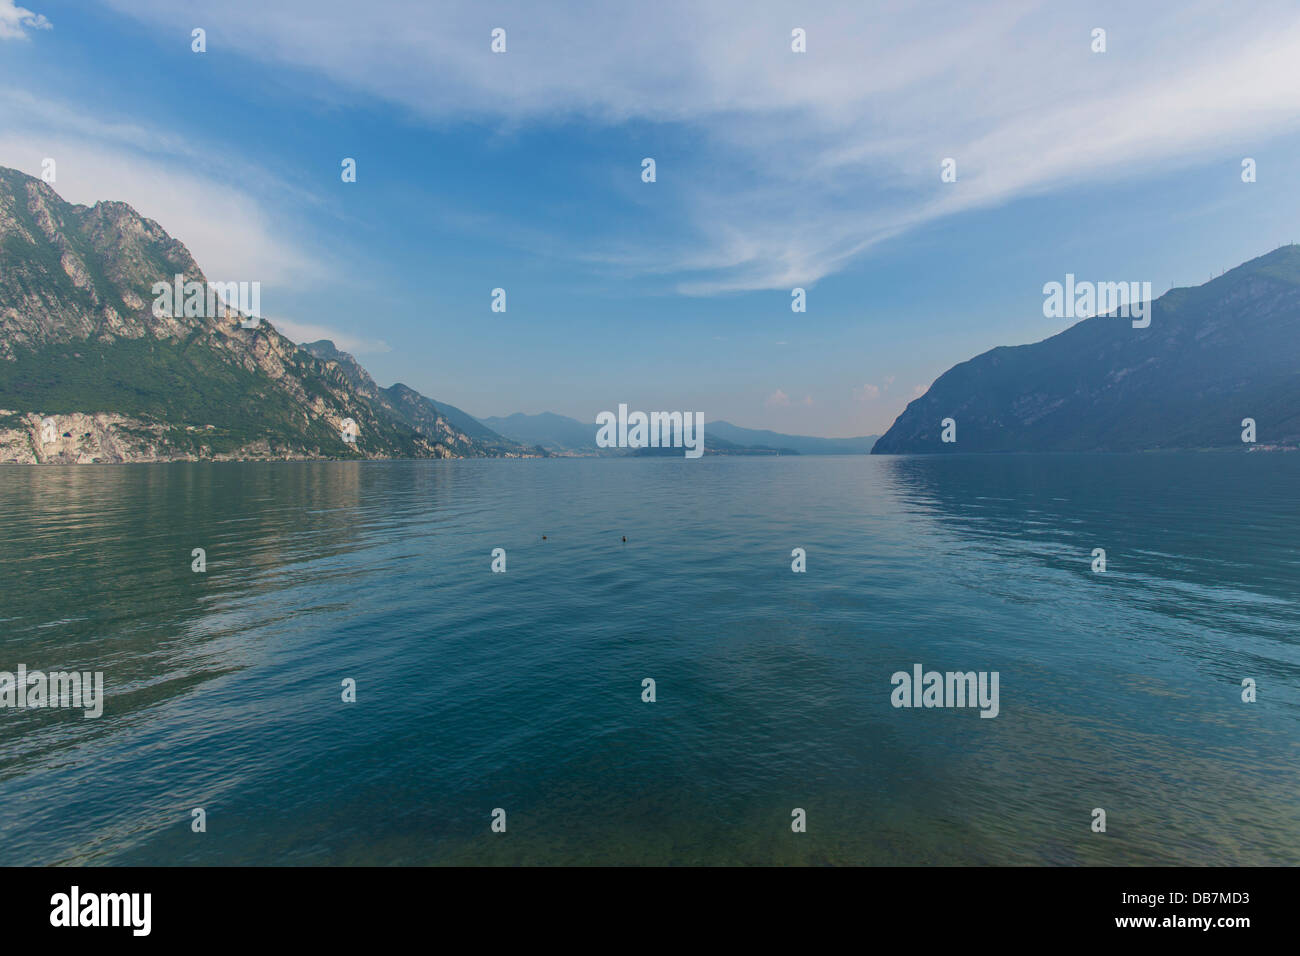 Lake Iseo or Lago d'Iseo with Monte Isola - Stock Image